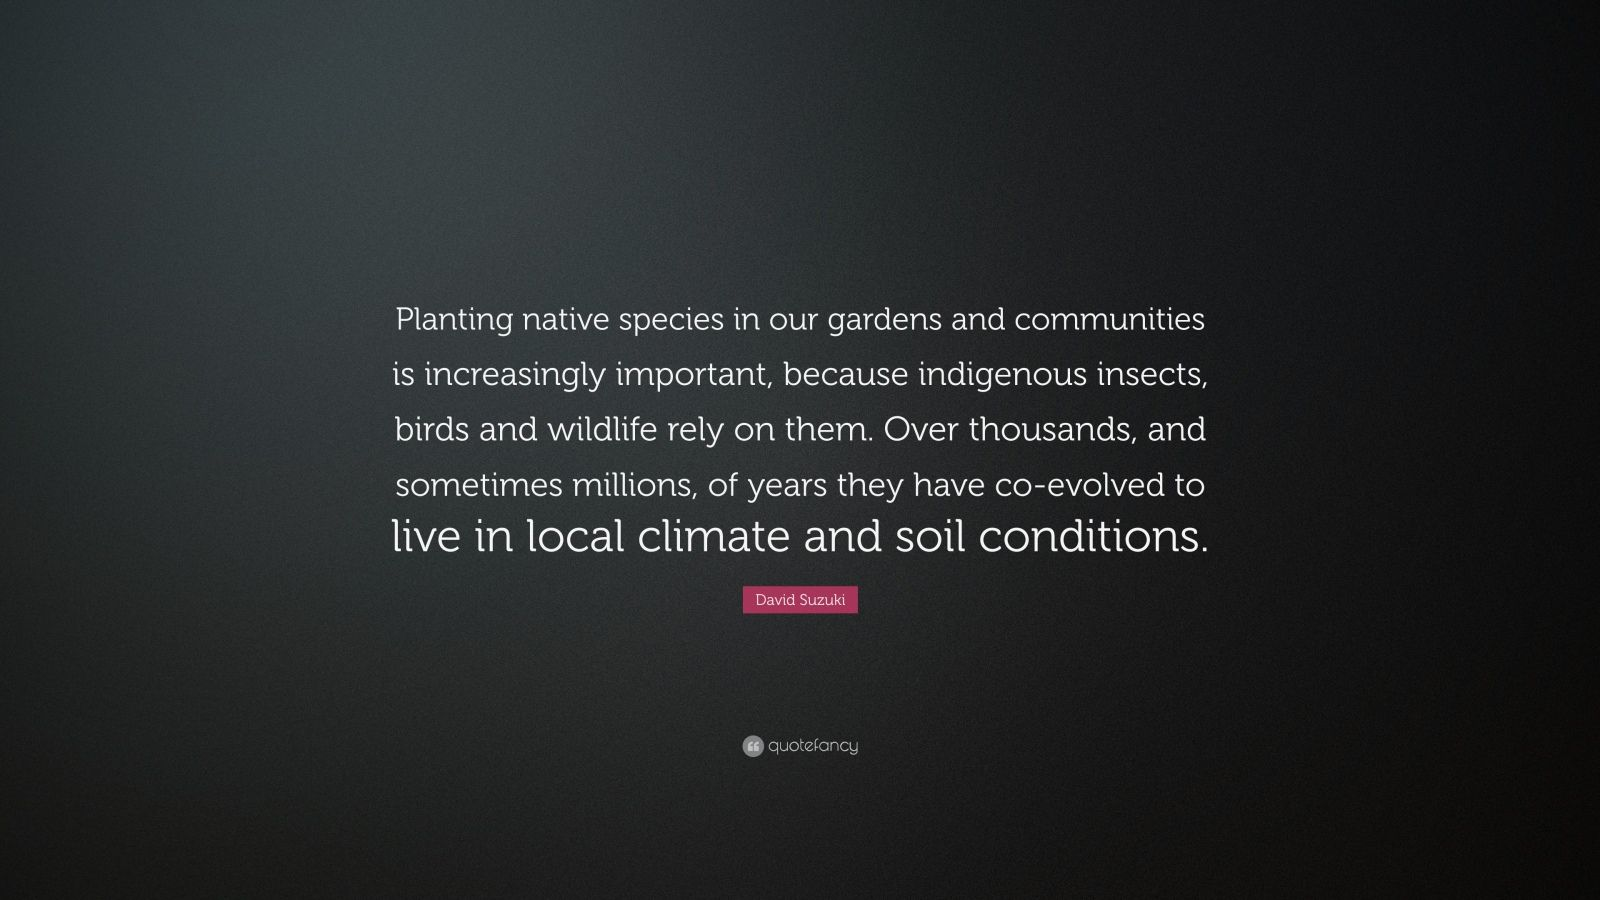 """David Suzuki Quote: """"Planting native species in our gardens and communities is increasingly important, because indigenous insects, birds and wildlife rely on them. Over thousands, and sometimes millions, of years they have co-evolved to live in local climate and soil conditions."""""""